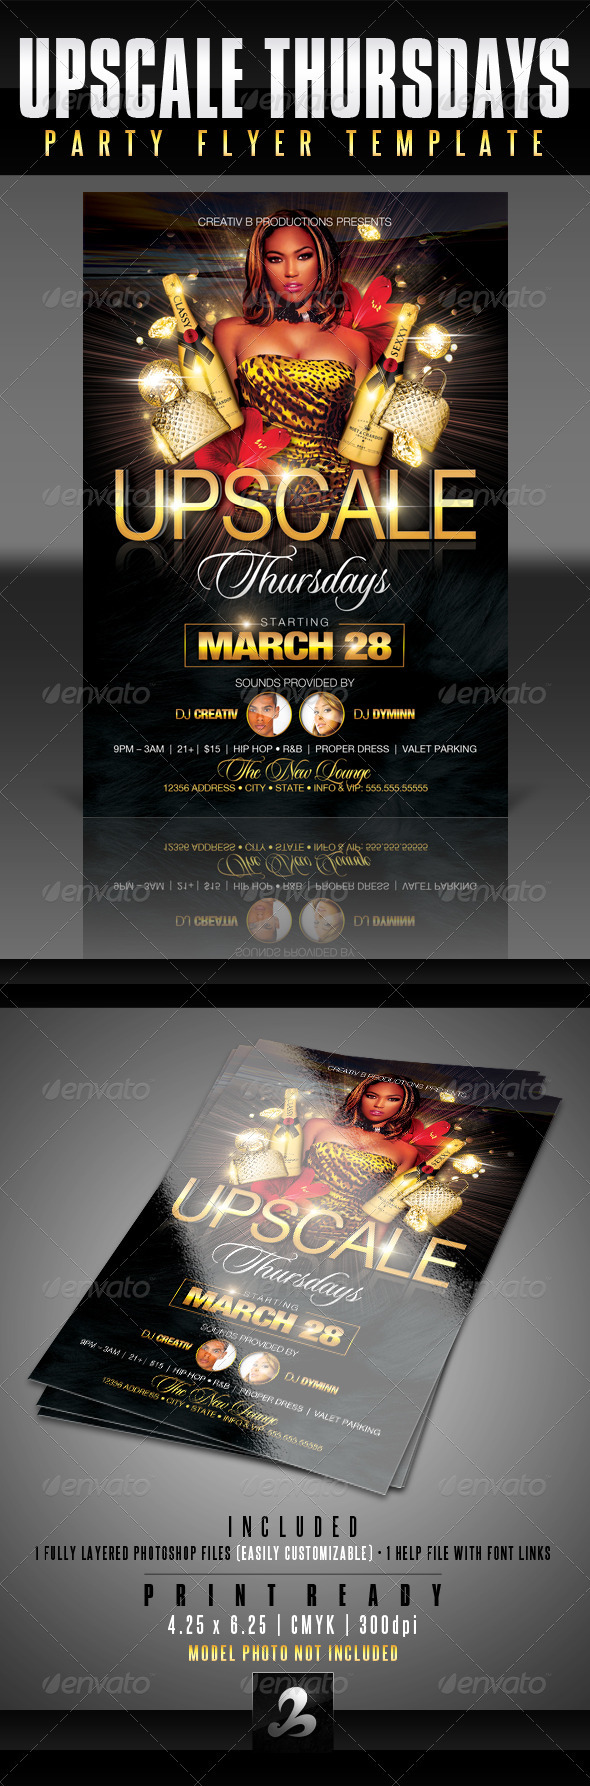 Upscale Party Flyer Template - Clubs & Parties Events